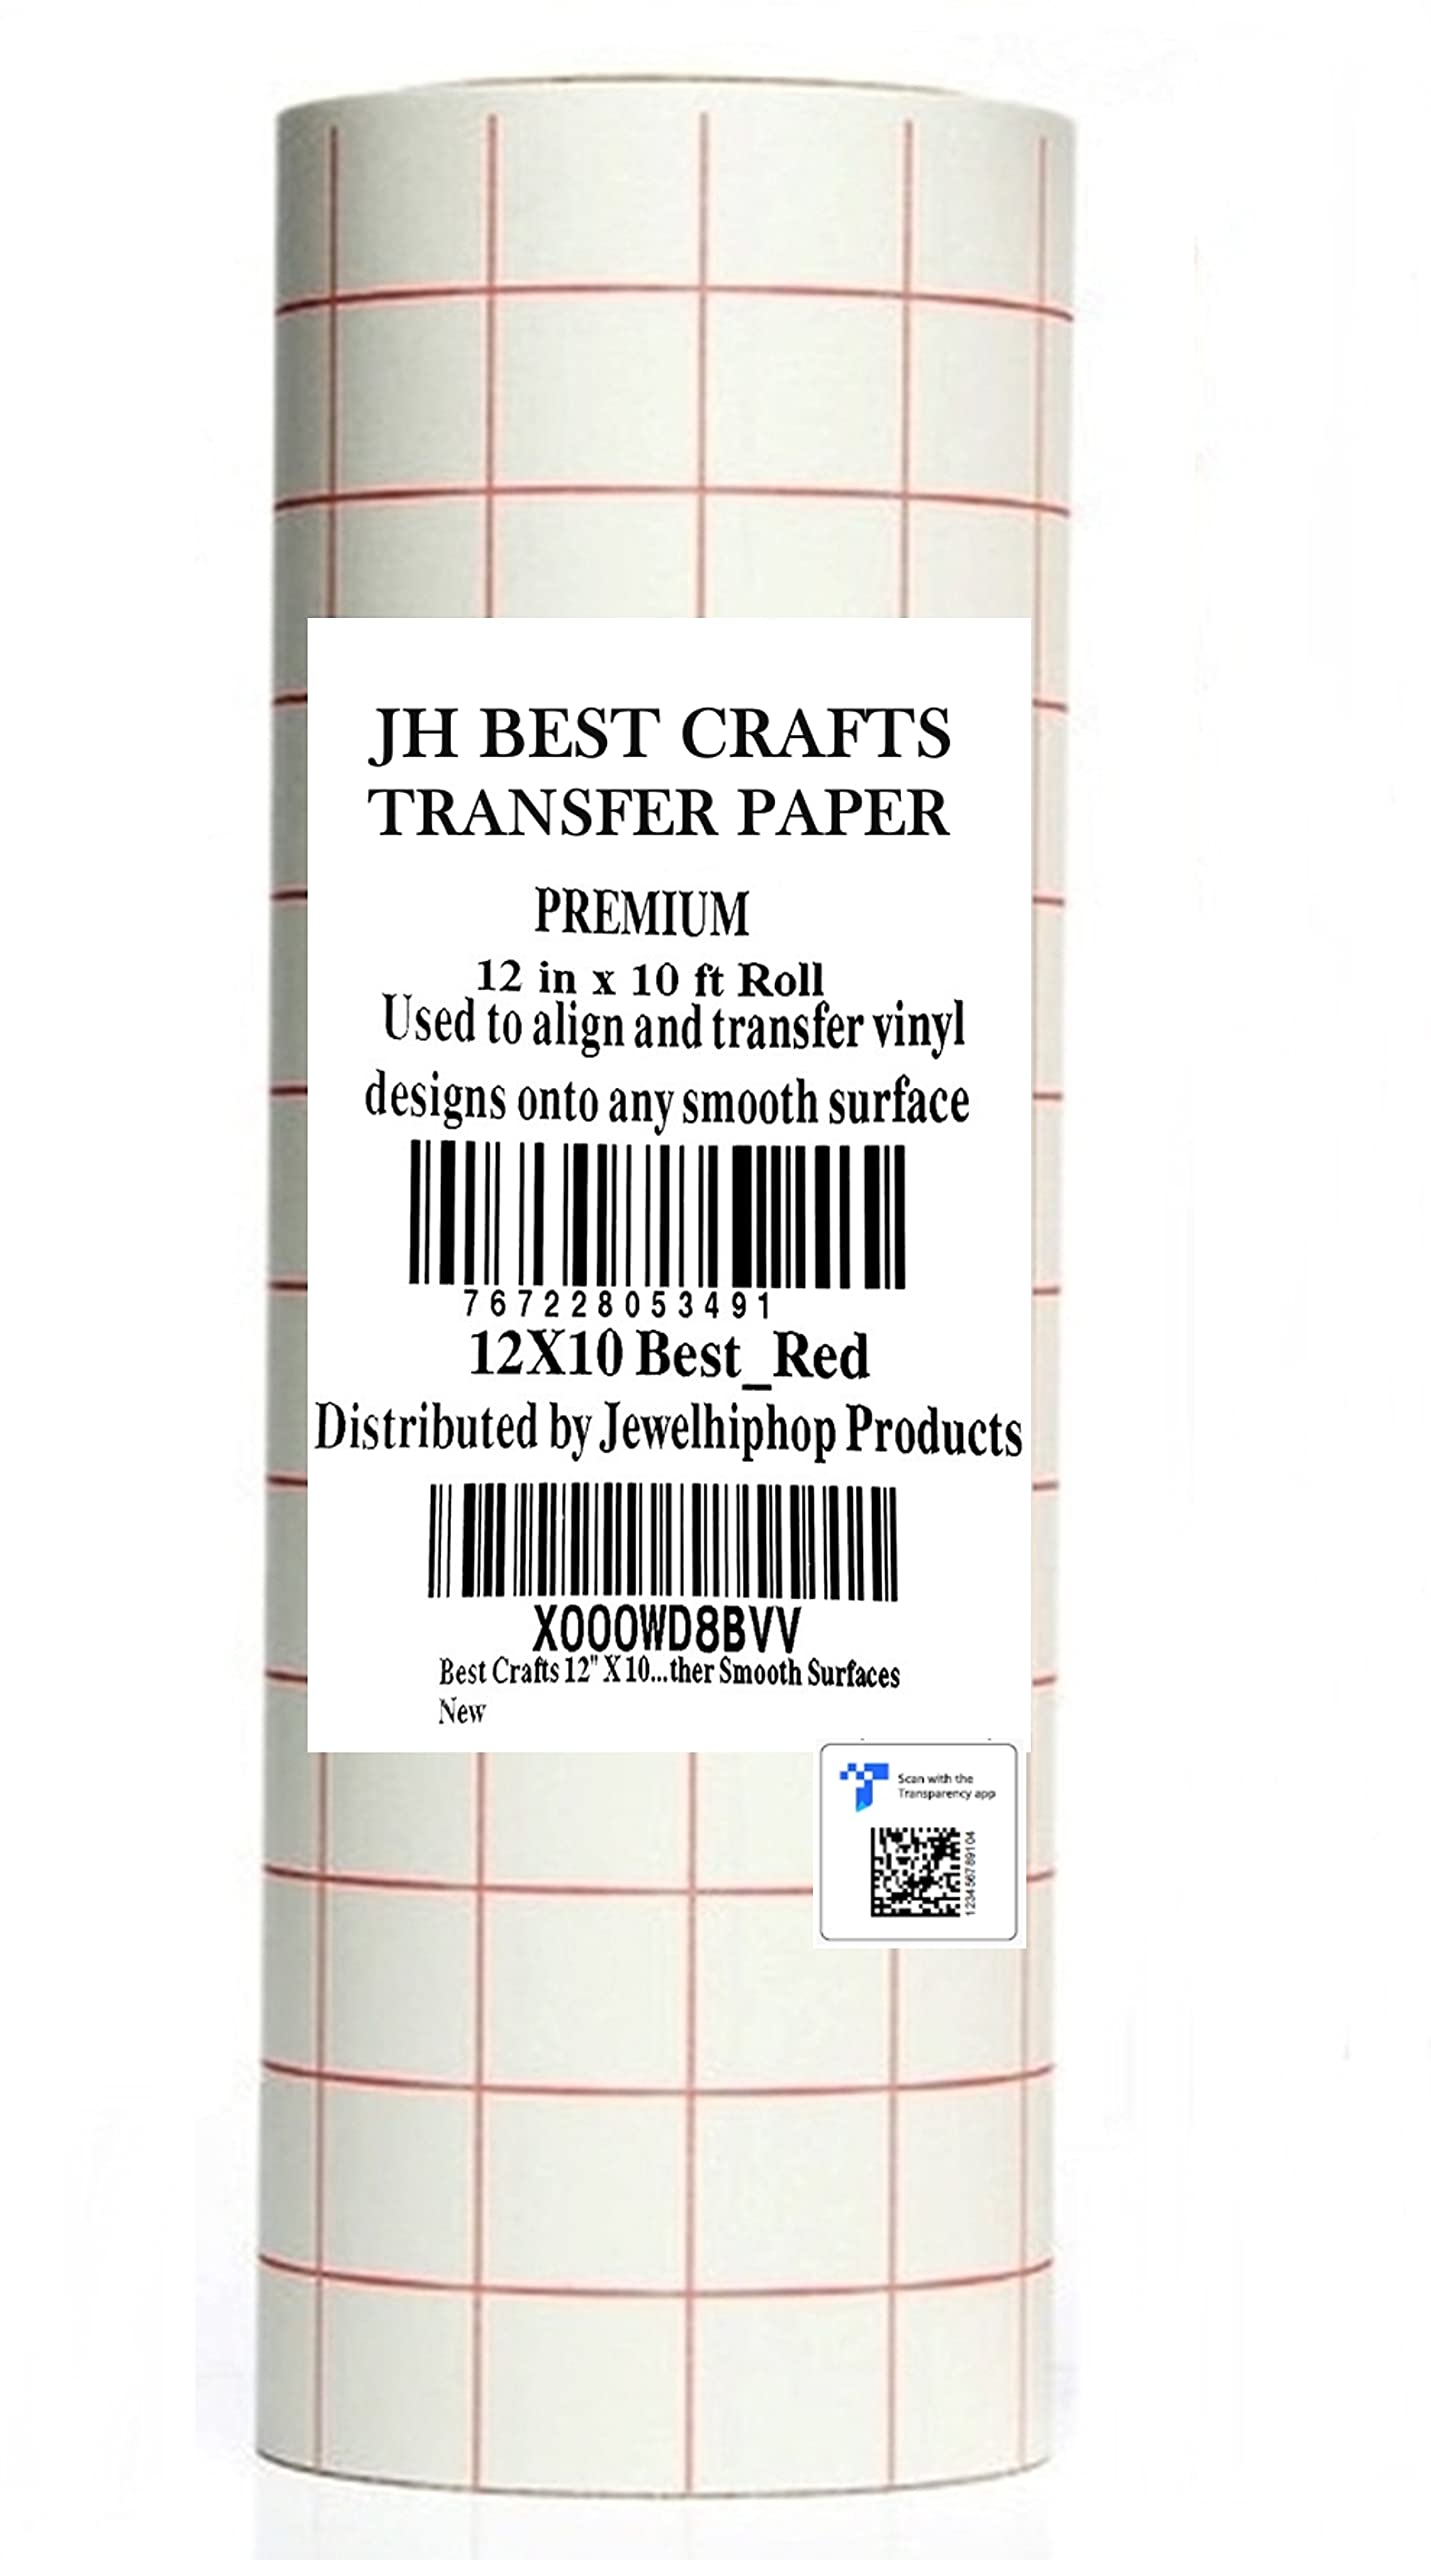 """Jh-Best Crafts12"""" X 10' Feet Roll Transfer Paper w/Grid- Perfect Alignment of Cameo or Cricut Self Adhesive Vinyl for Decals, Signs, Walls, Windows and Other Smooth Surfaces"""